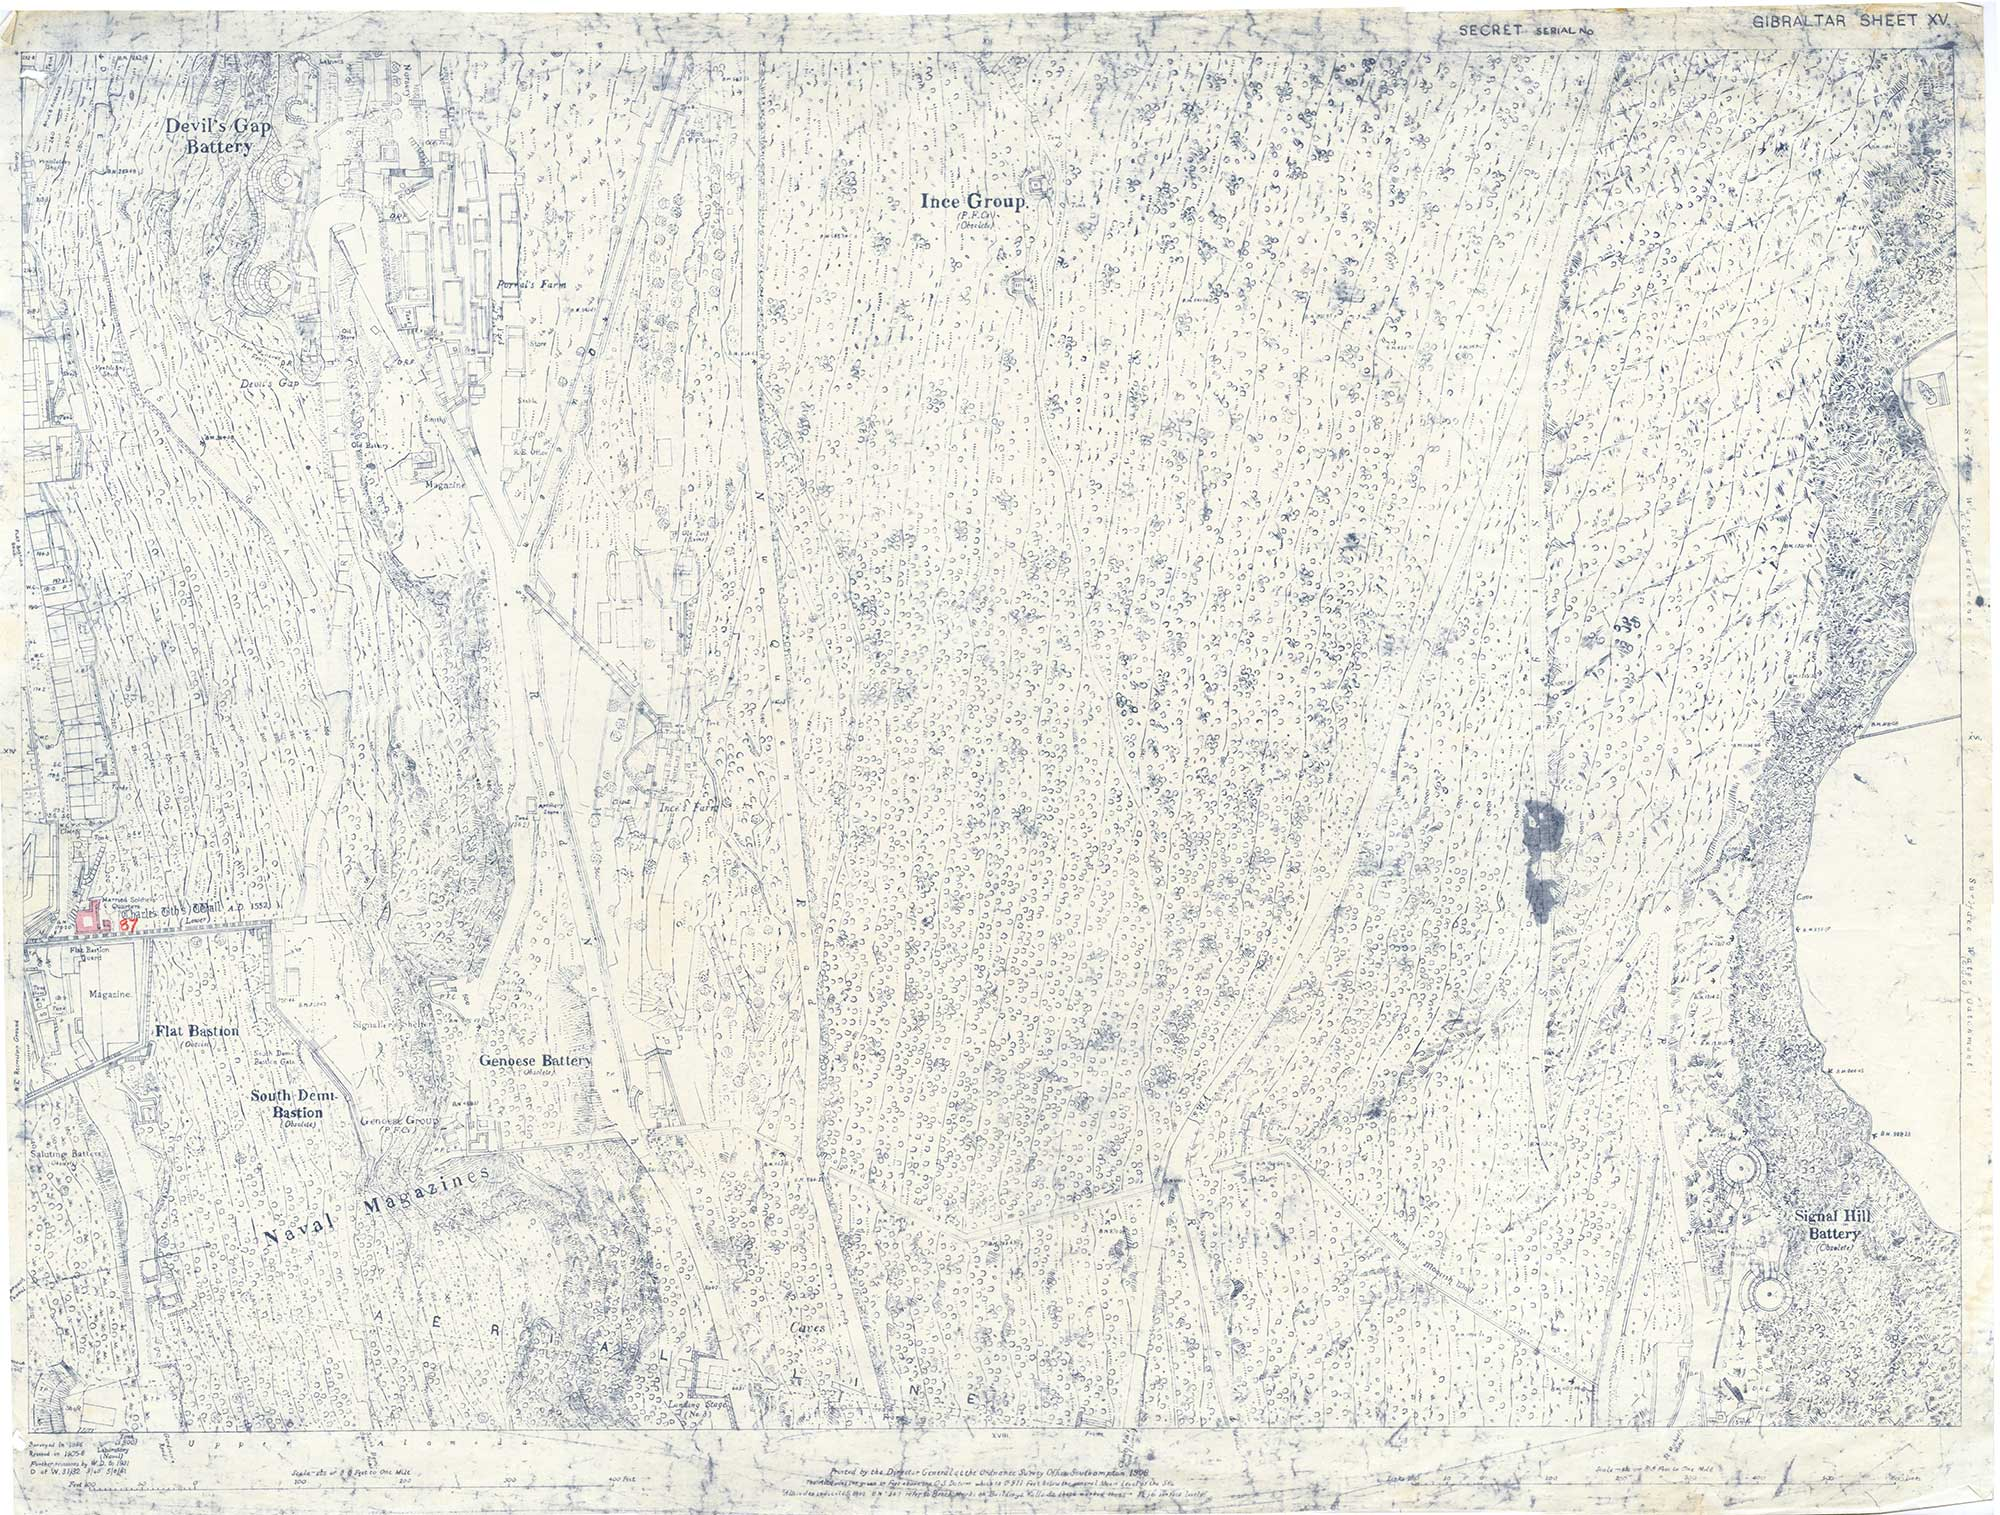 Map-30-Sheet-15-Devils-Gap-Battery-to-Signal-Hill-1941